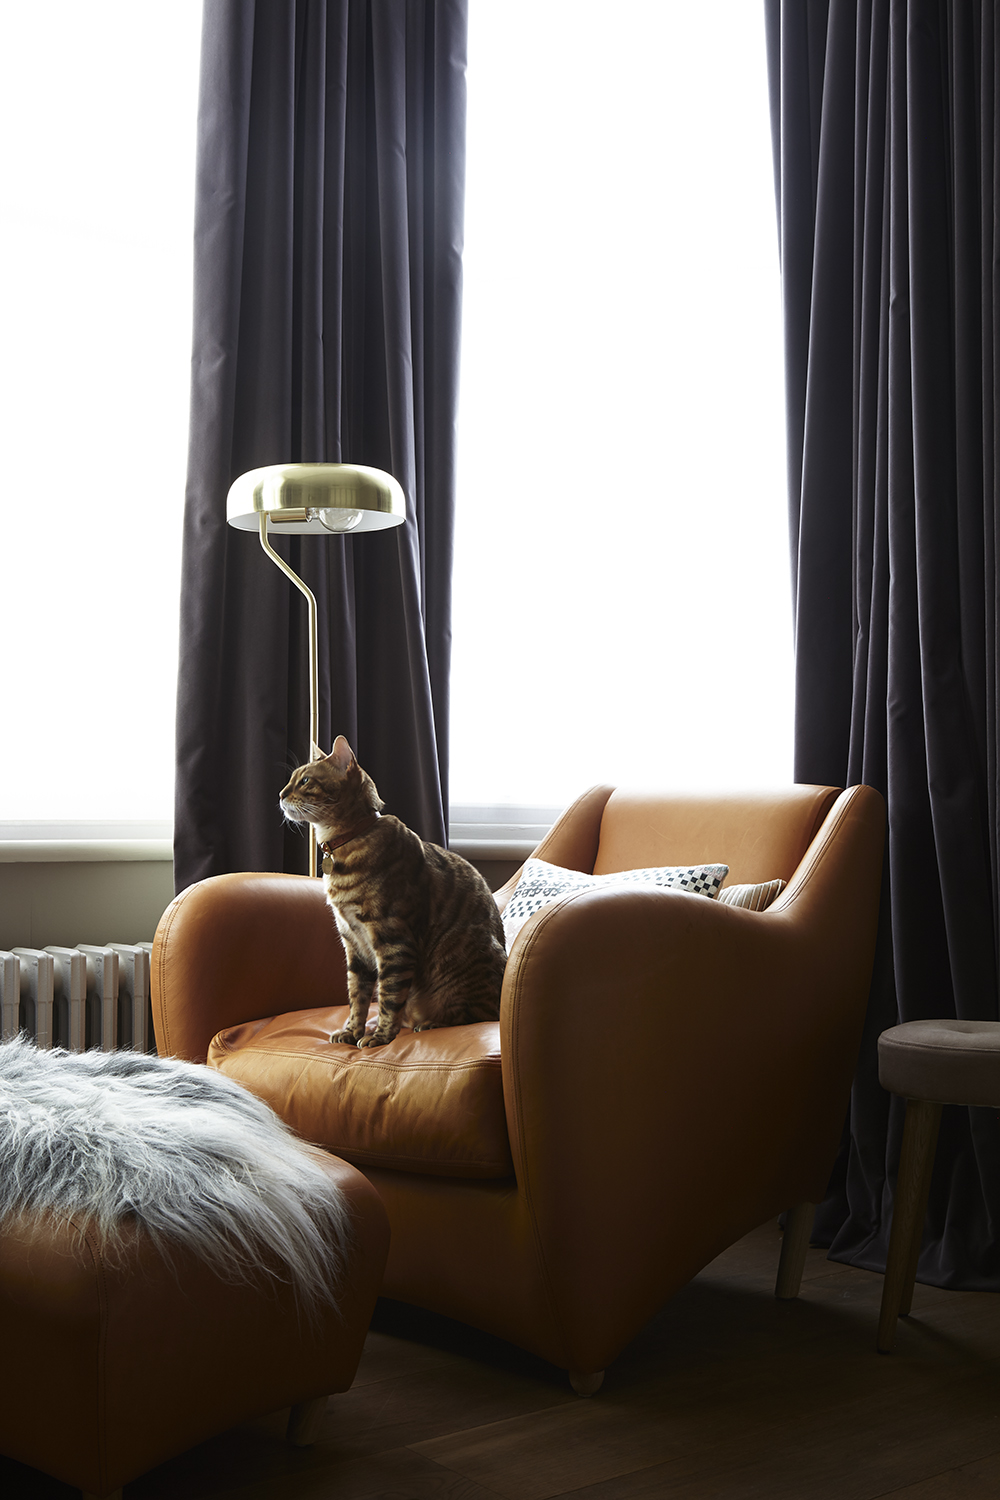 interior-design-styling-residential-chair-leather-throw-window-cat-cushions-lamp